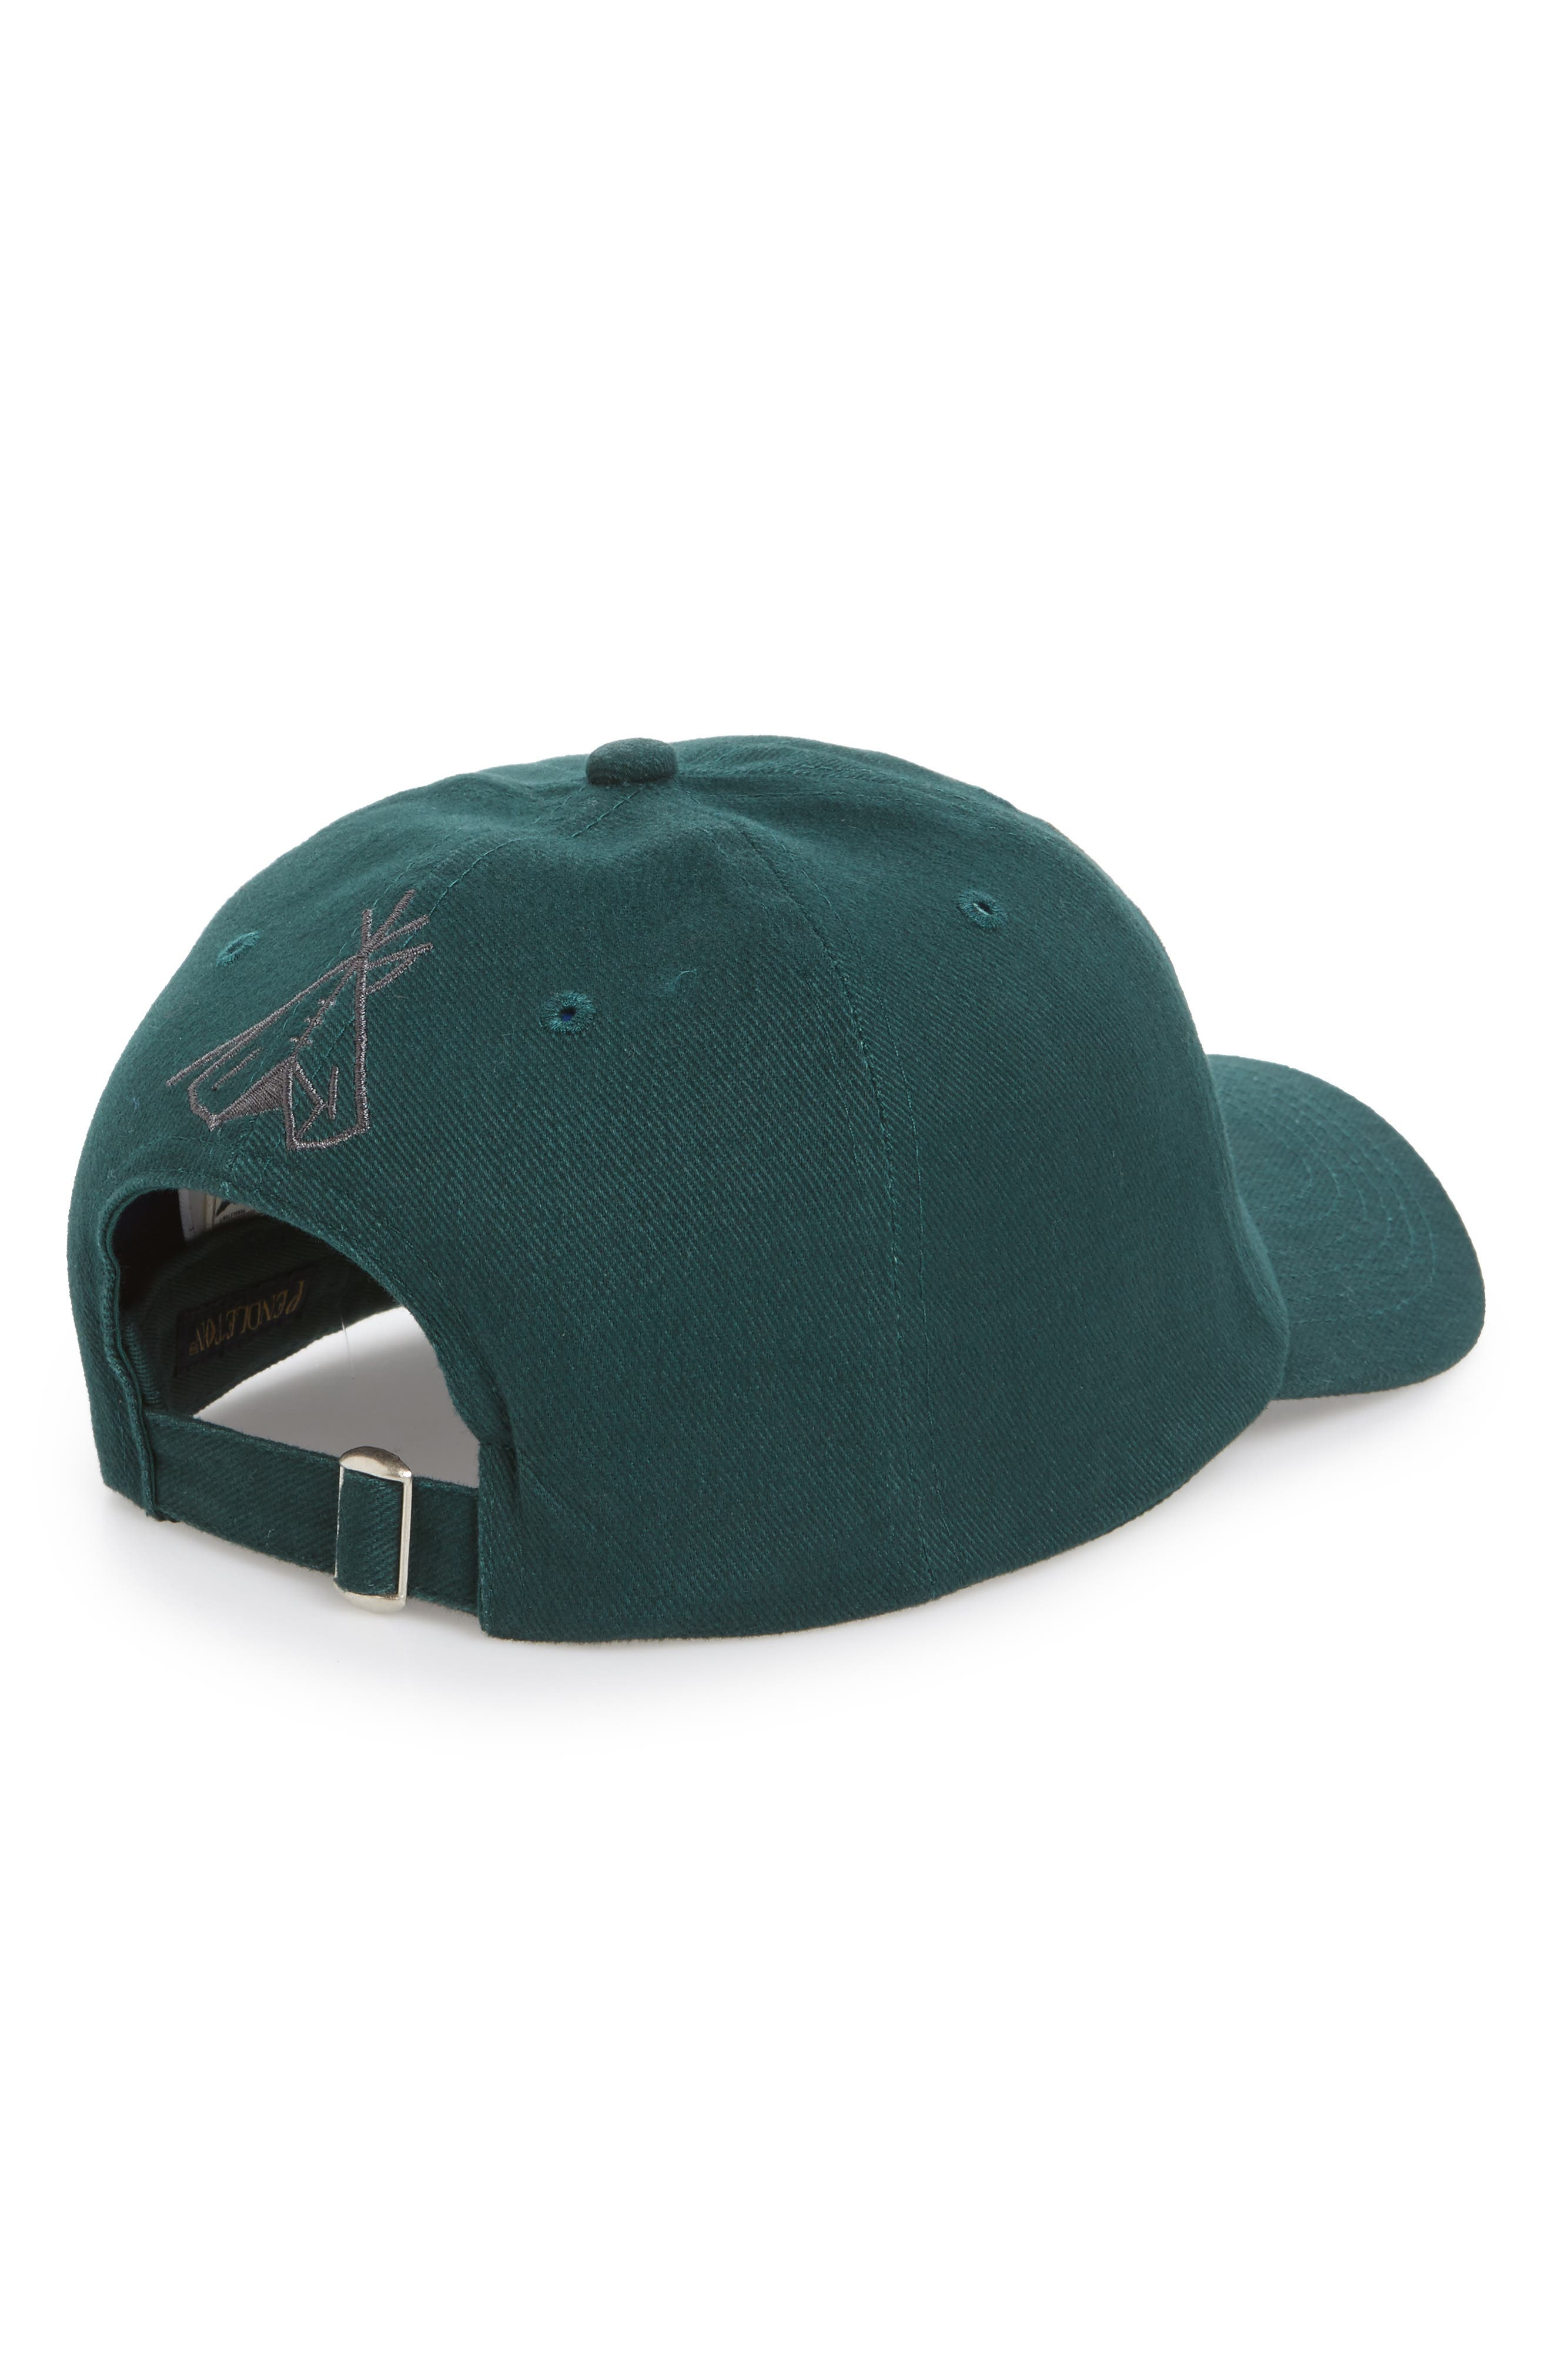 Embroidered Ball Cap,                             Alternate thumbnail 3, color,